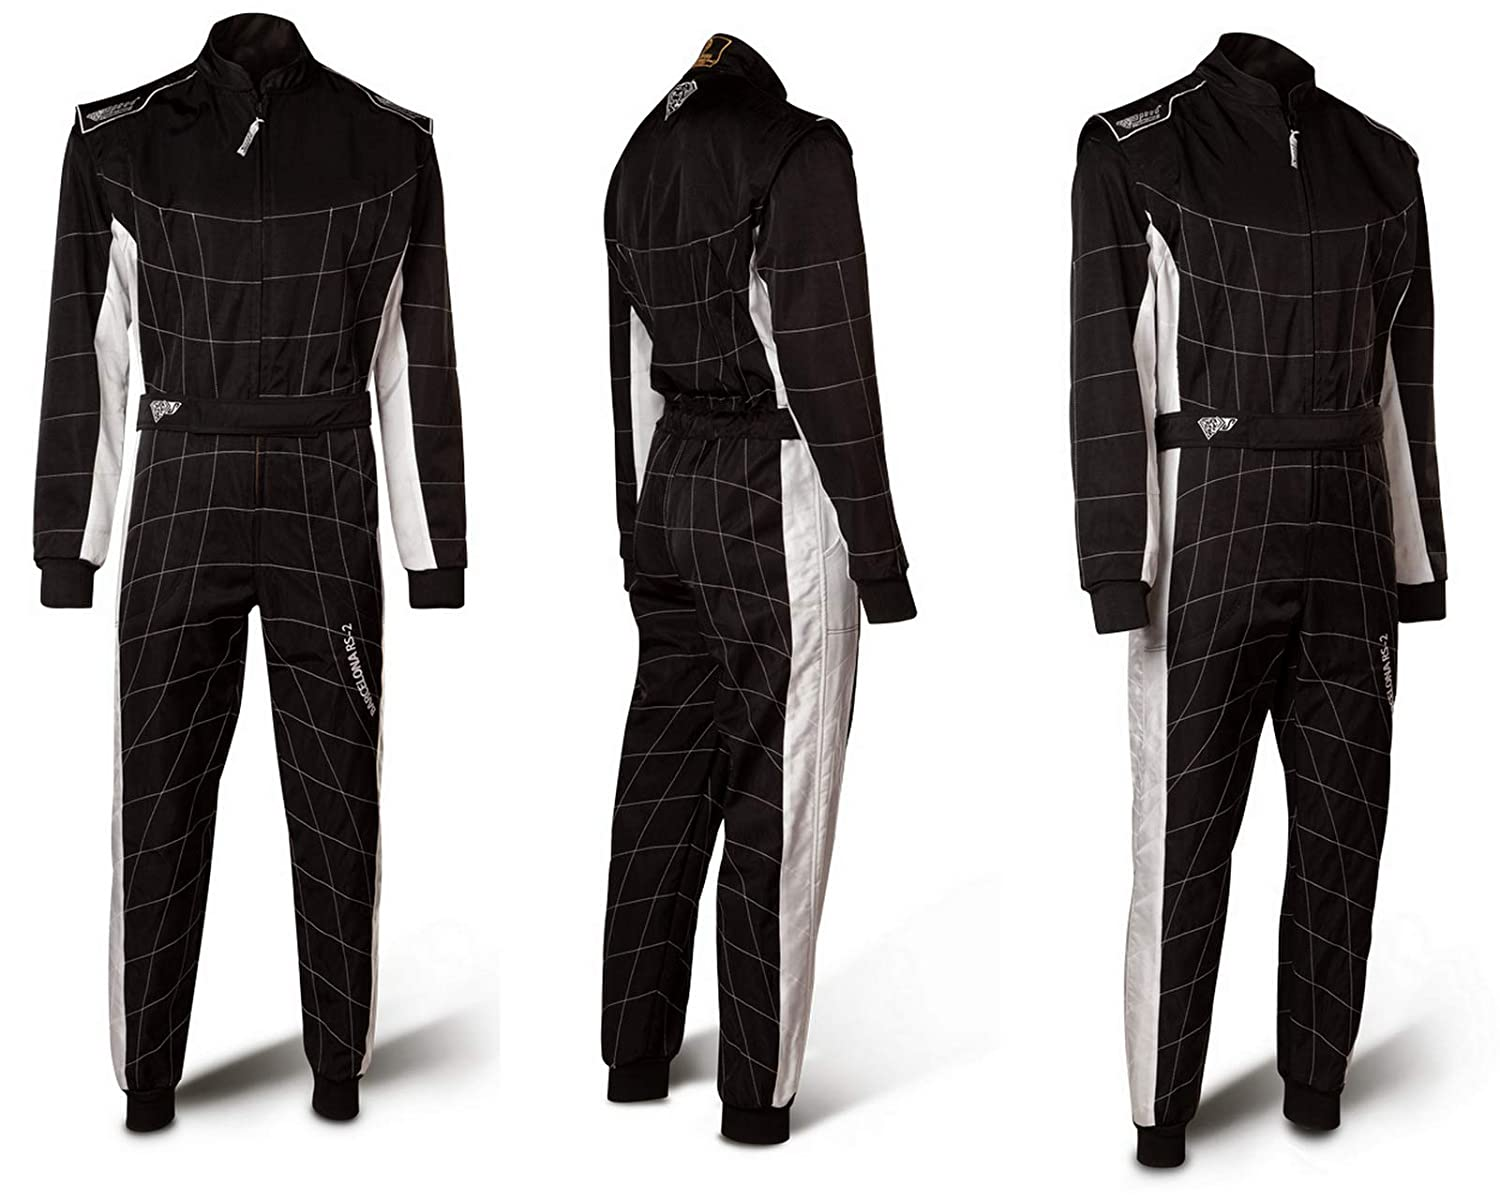 XL Rennoverall Schwarz//wei/ß Level 2 CIK FIA Approved Racing Suit Speed Kartoverall Barcelona RS-2